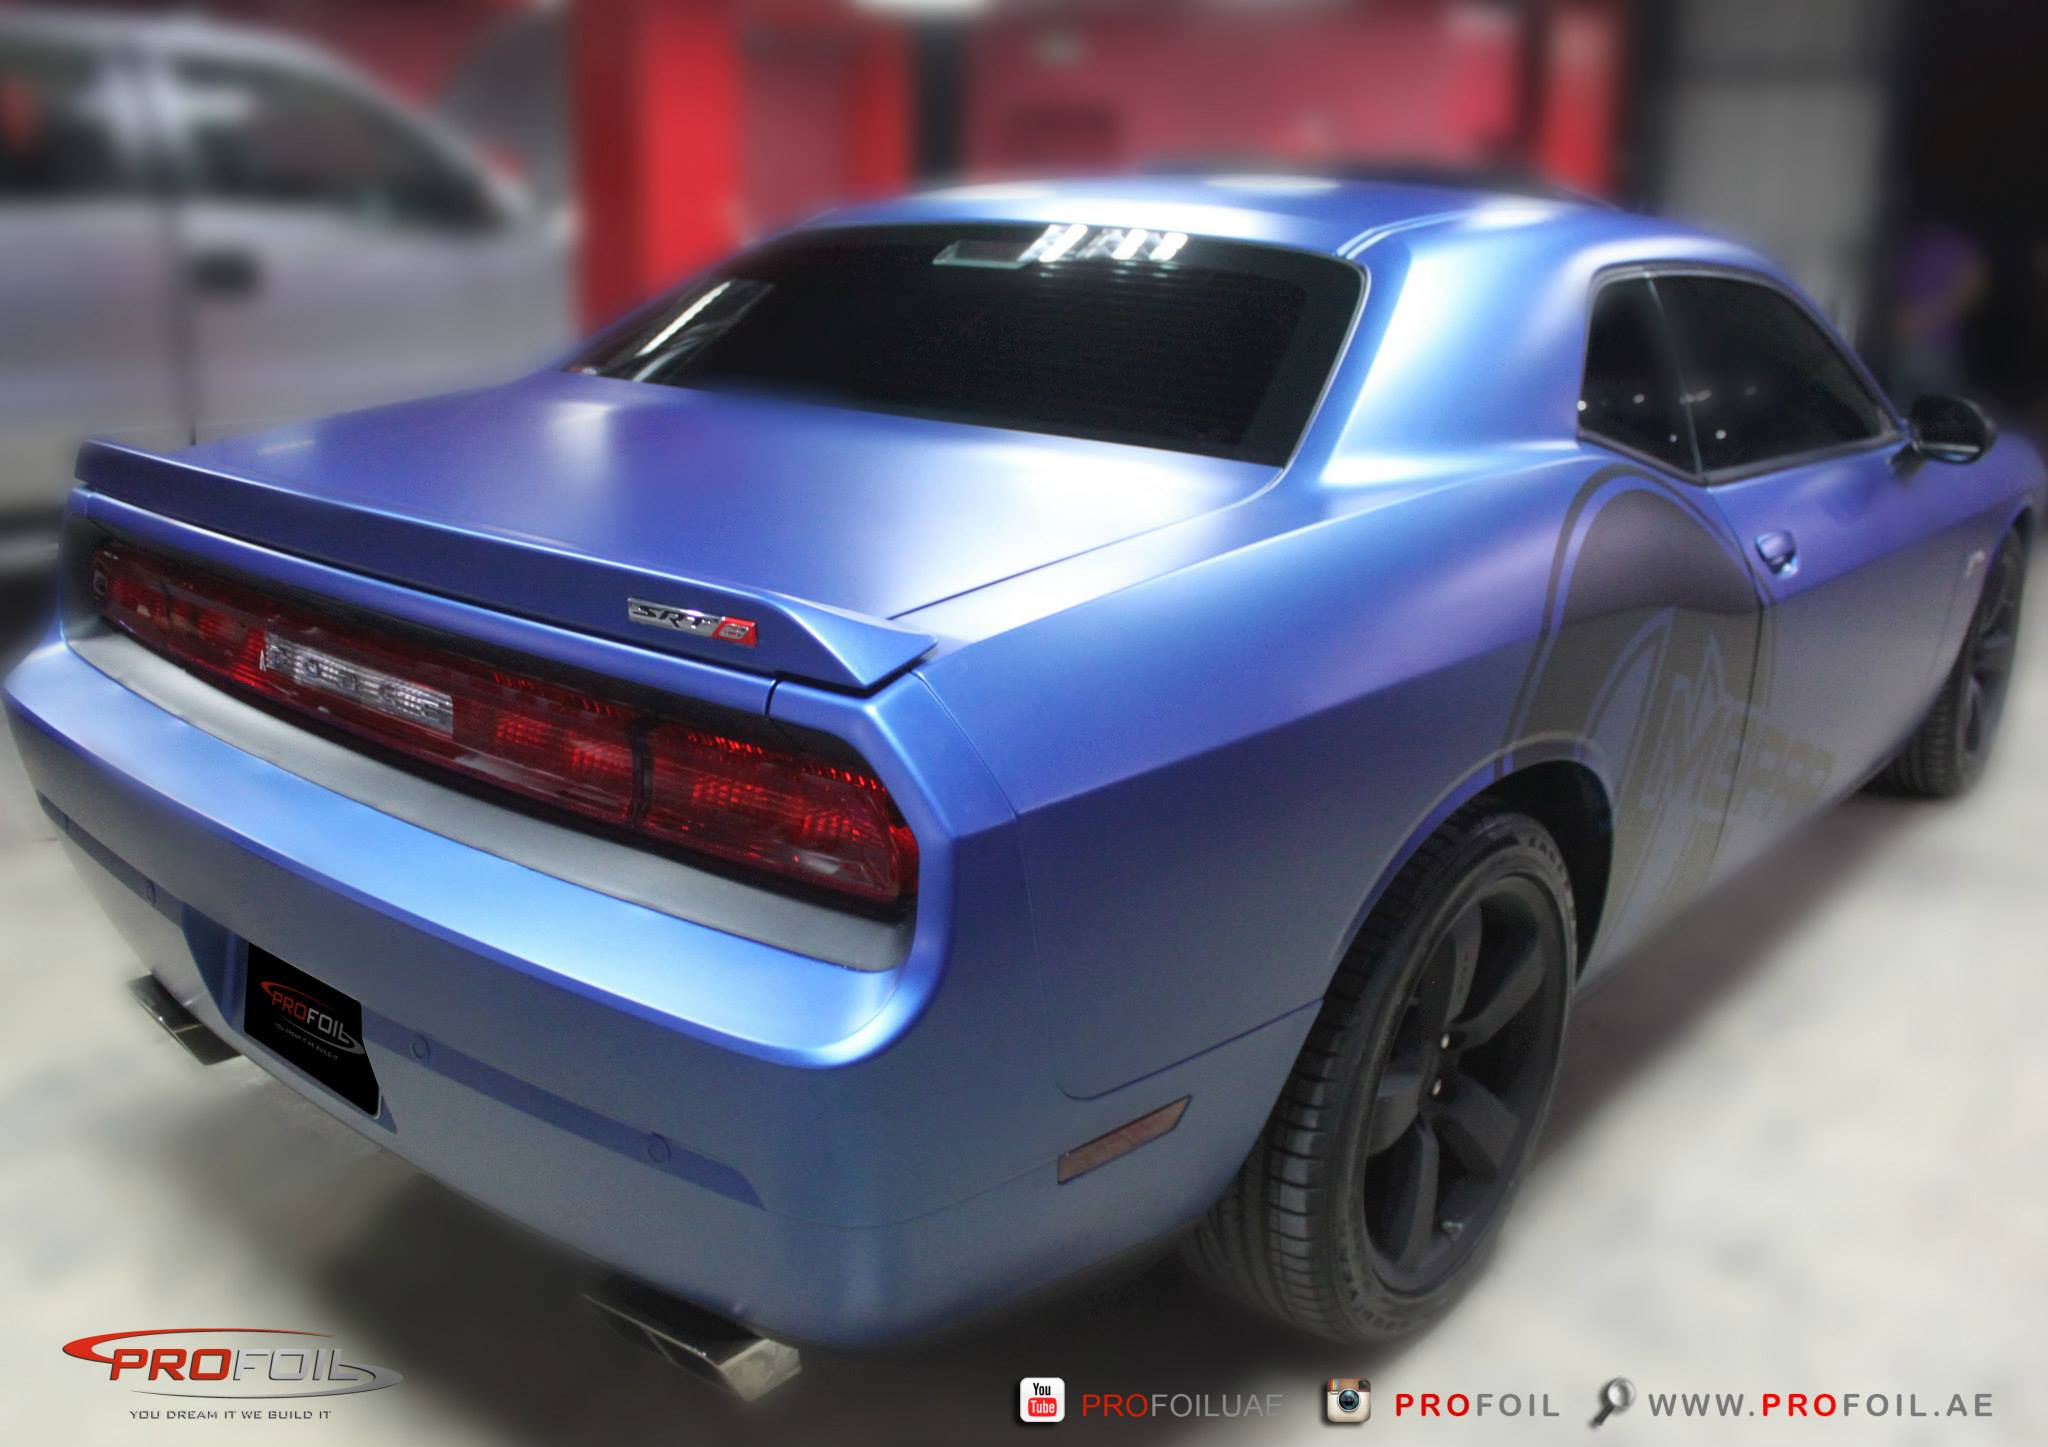 Dodge Challenger Srt Gets Matt Blue Wrap From Profoil